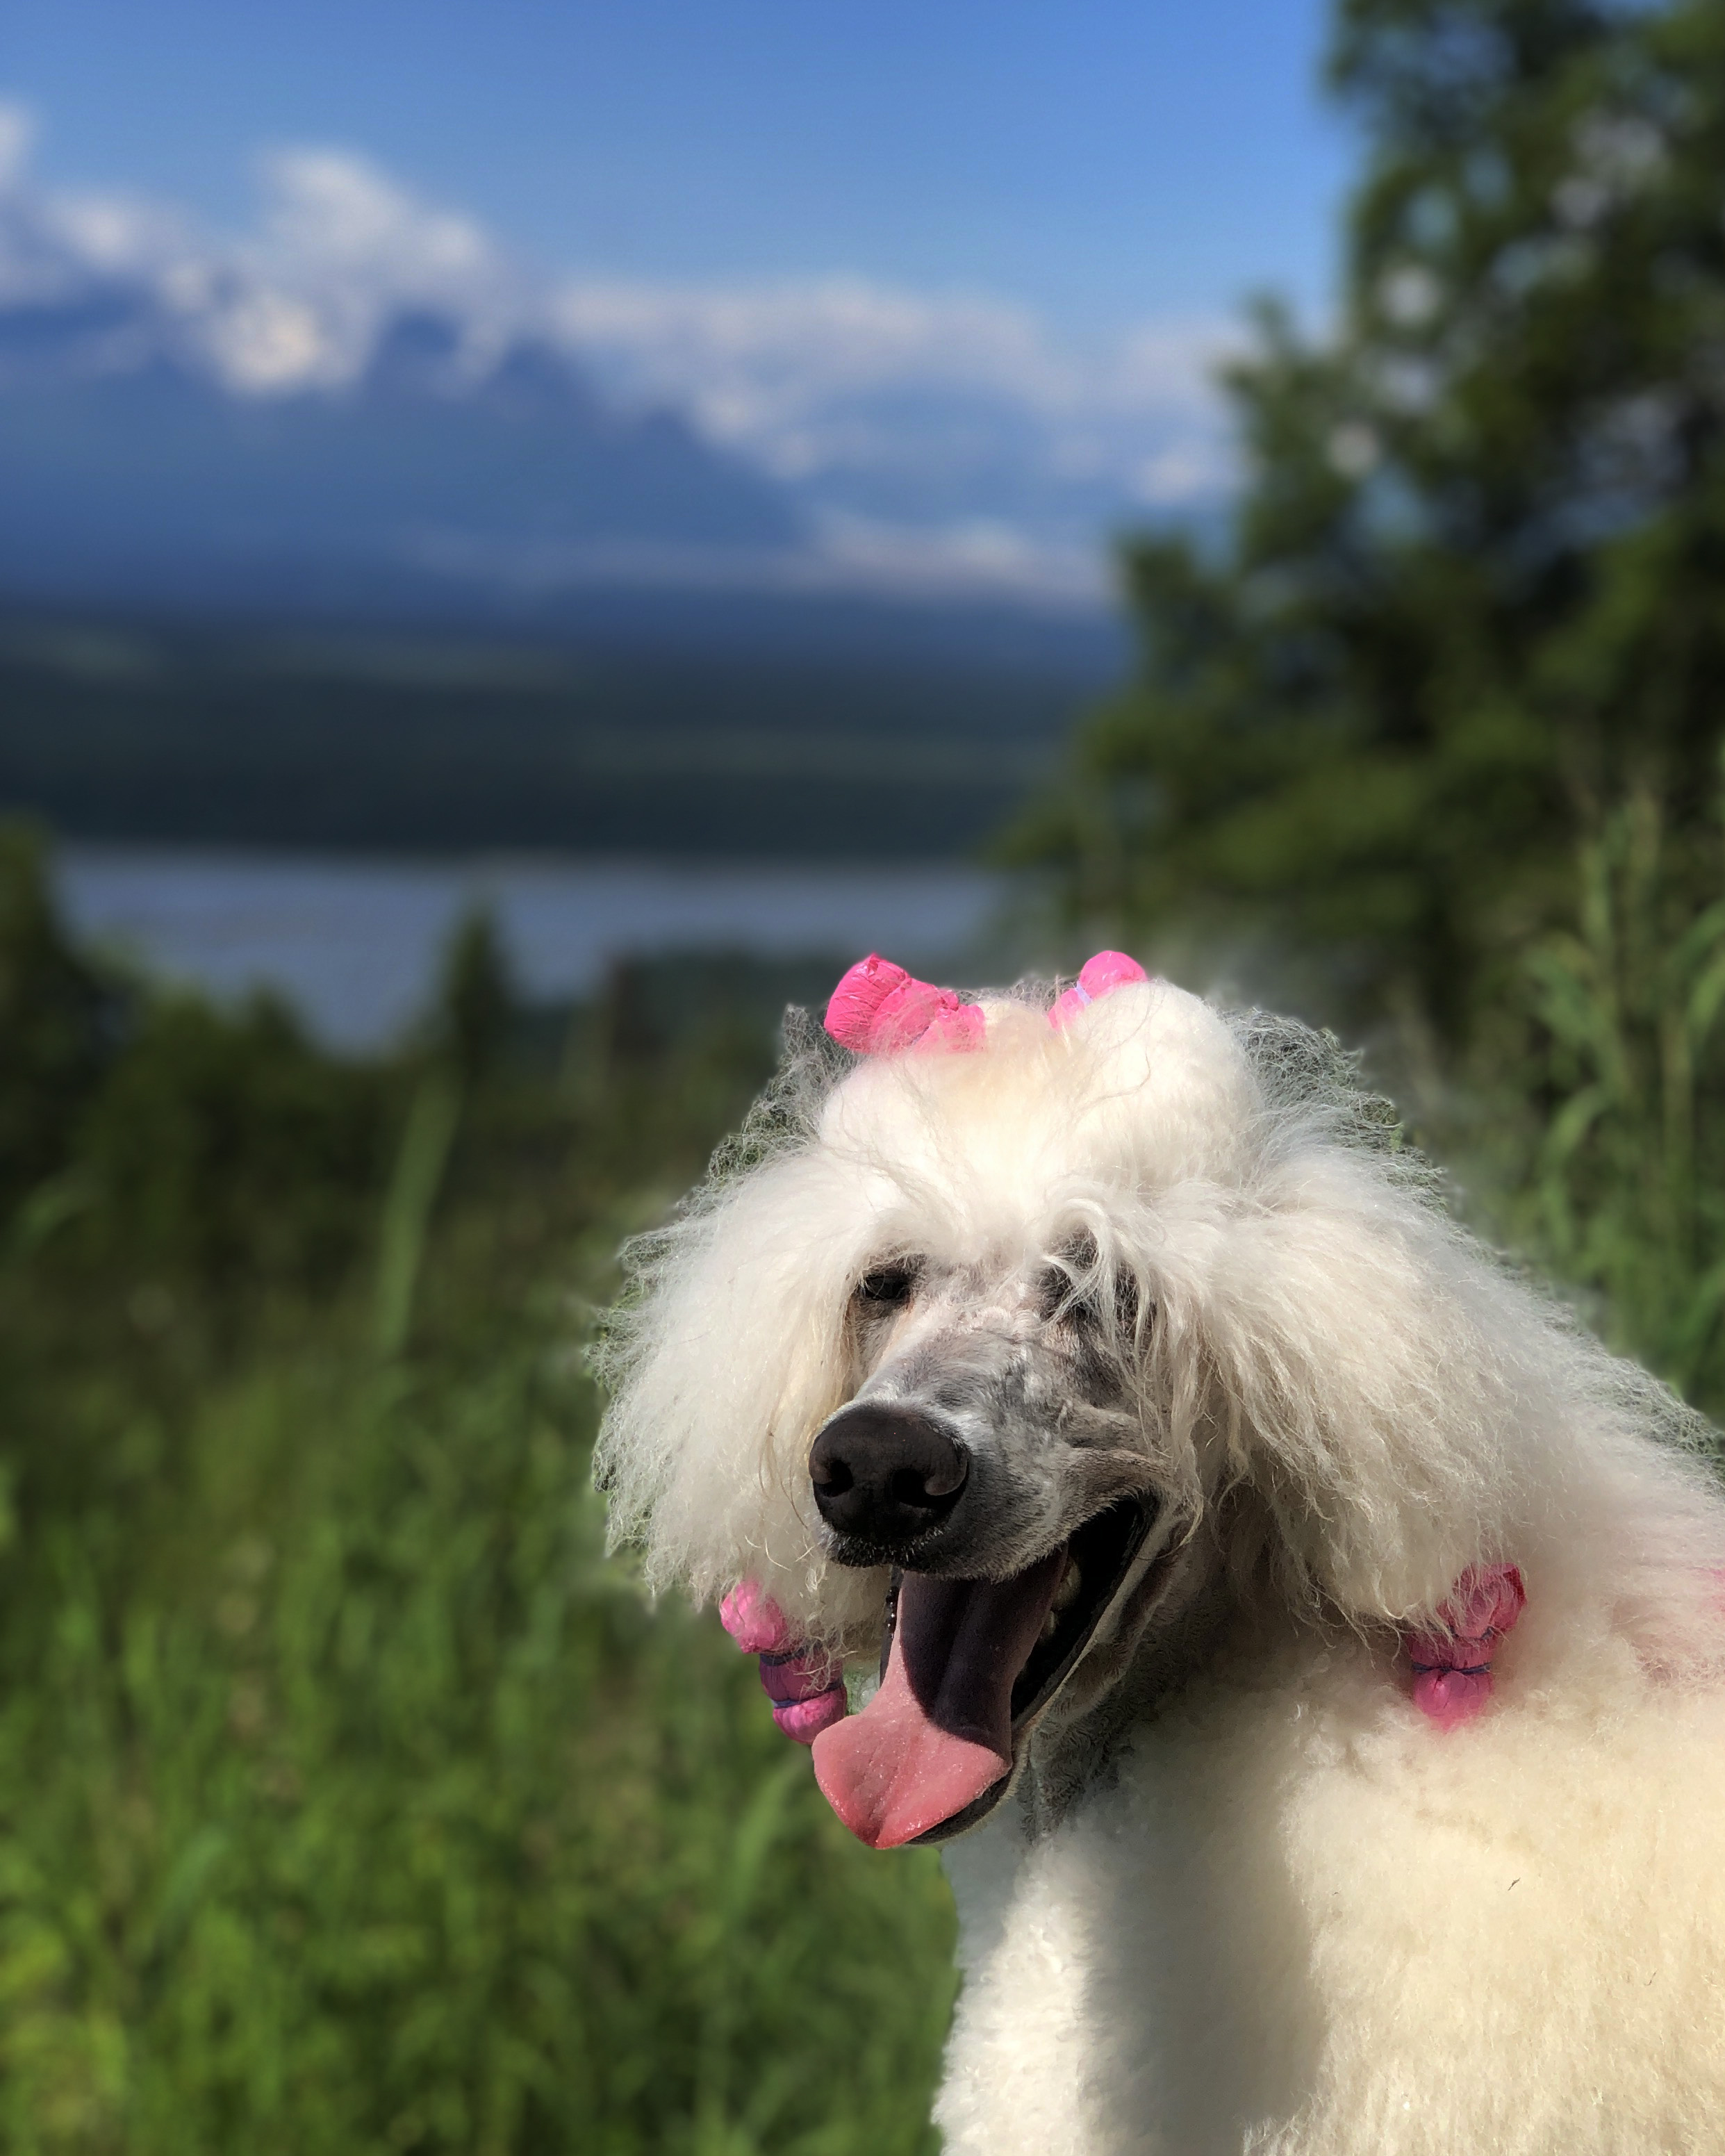 Pali loves to hik in the mountains.